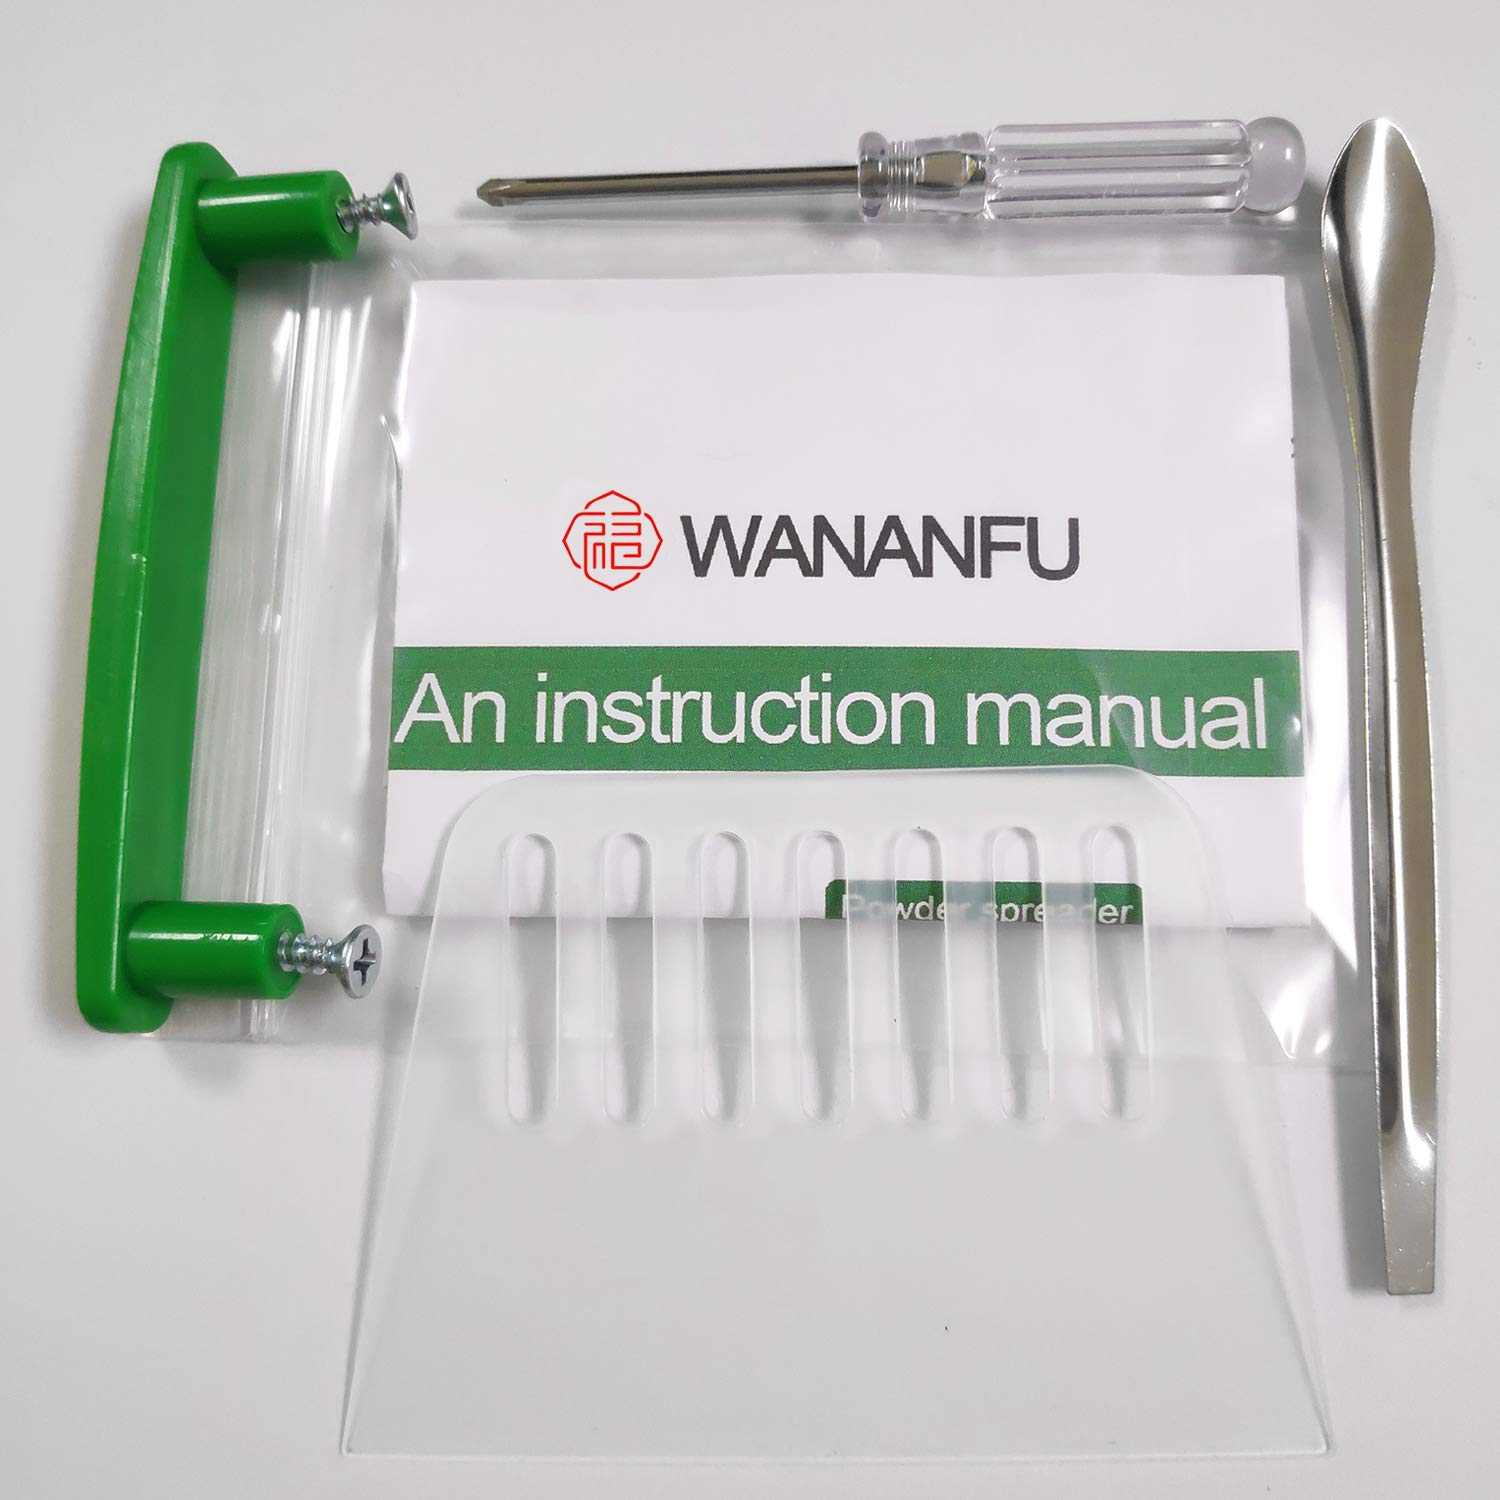 100 Hole (000#) Capsule Holder with Tamper for Size 000 Empty Capsules Holding Tray Pill Dispensers & Reminders -Green by wananfu (Image #7)